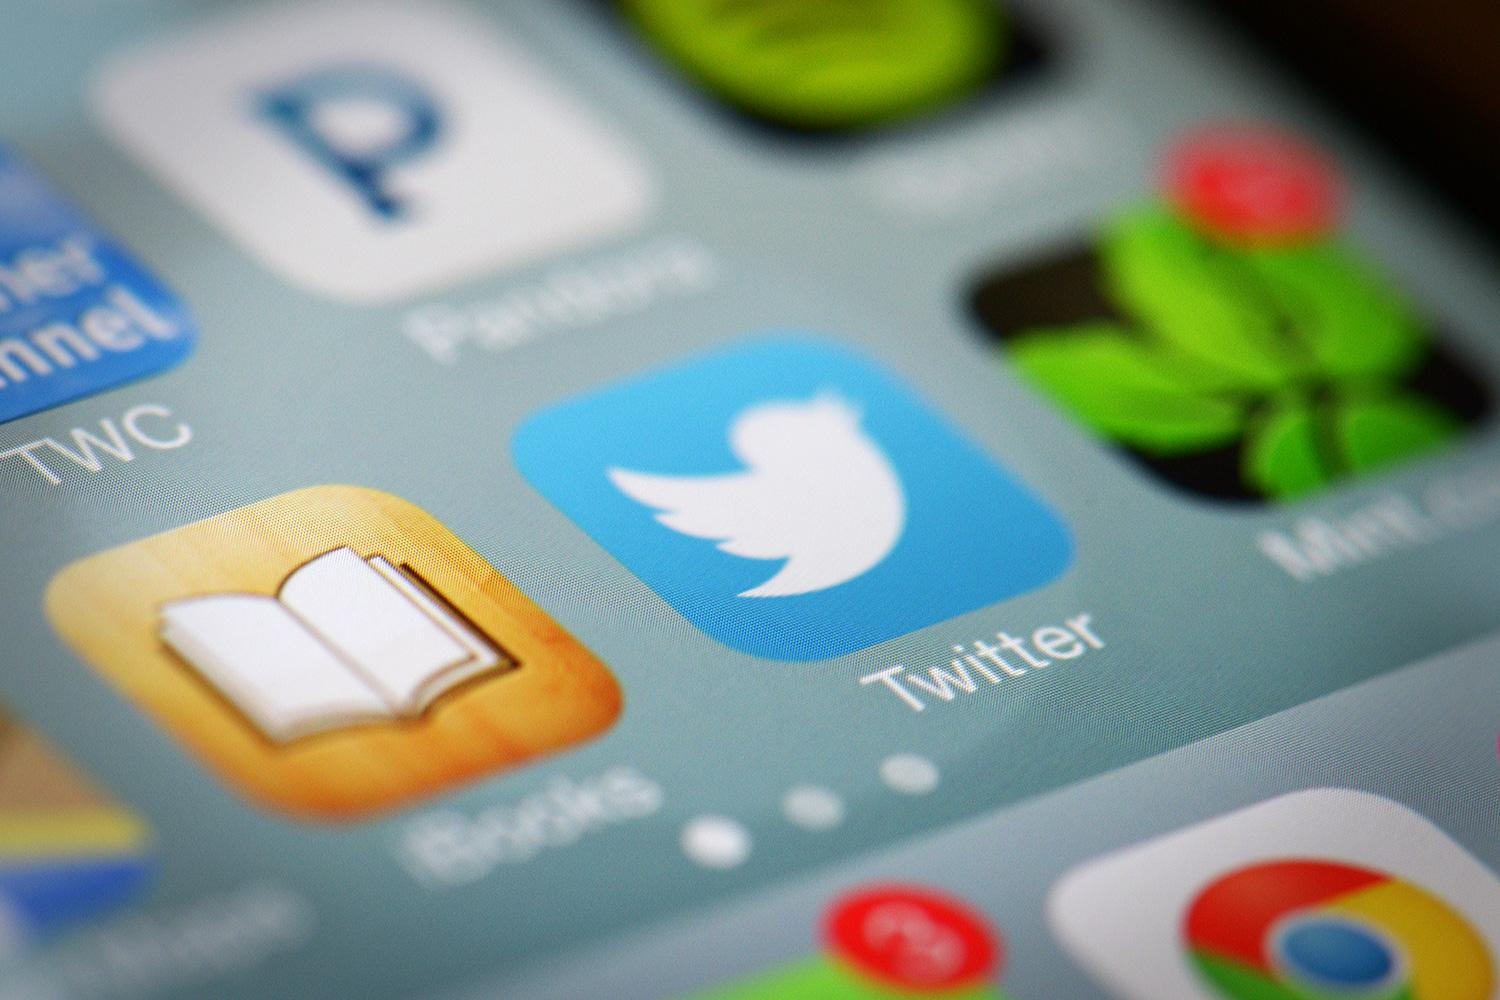 New Twitter Features Improve B2C Relationship